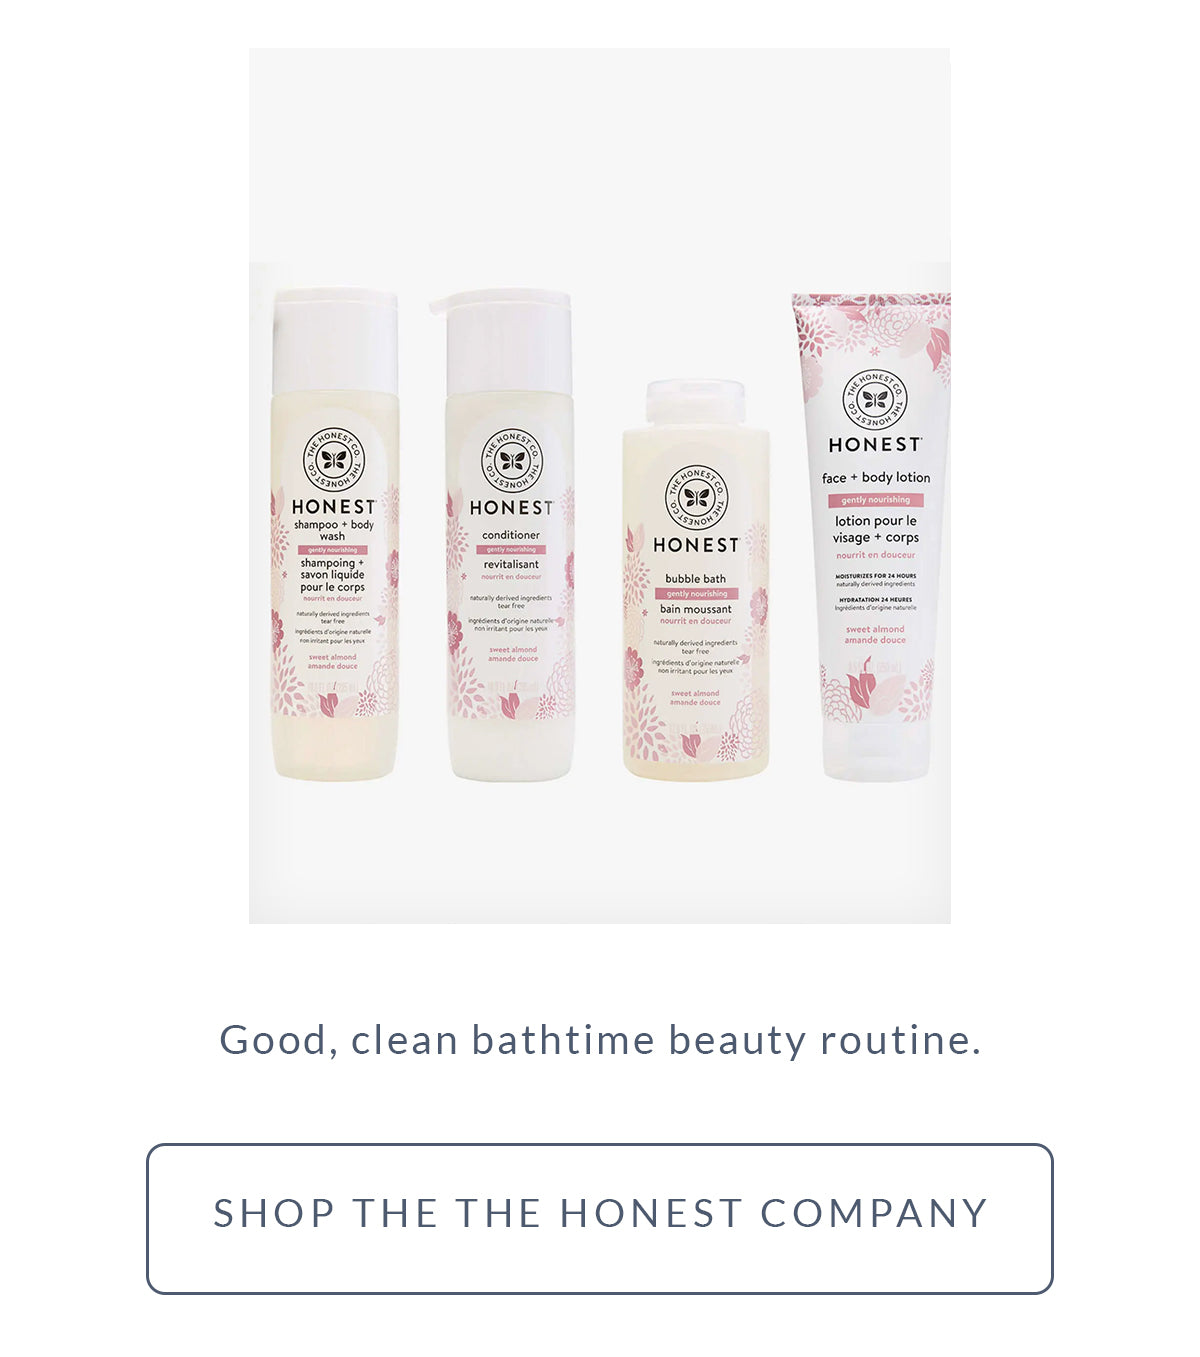 Free x Rein Mother's Day Gift Guide - Honest Bath Set